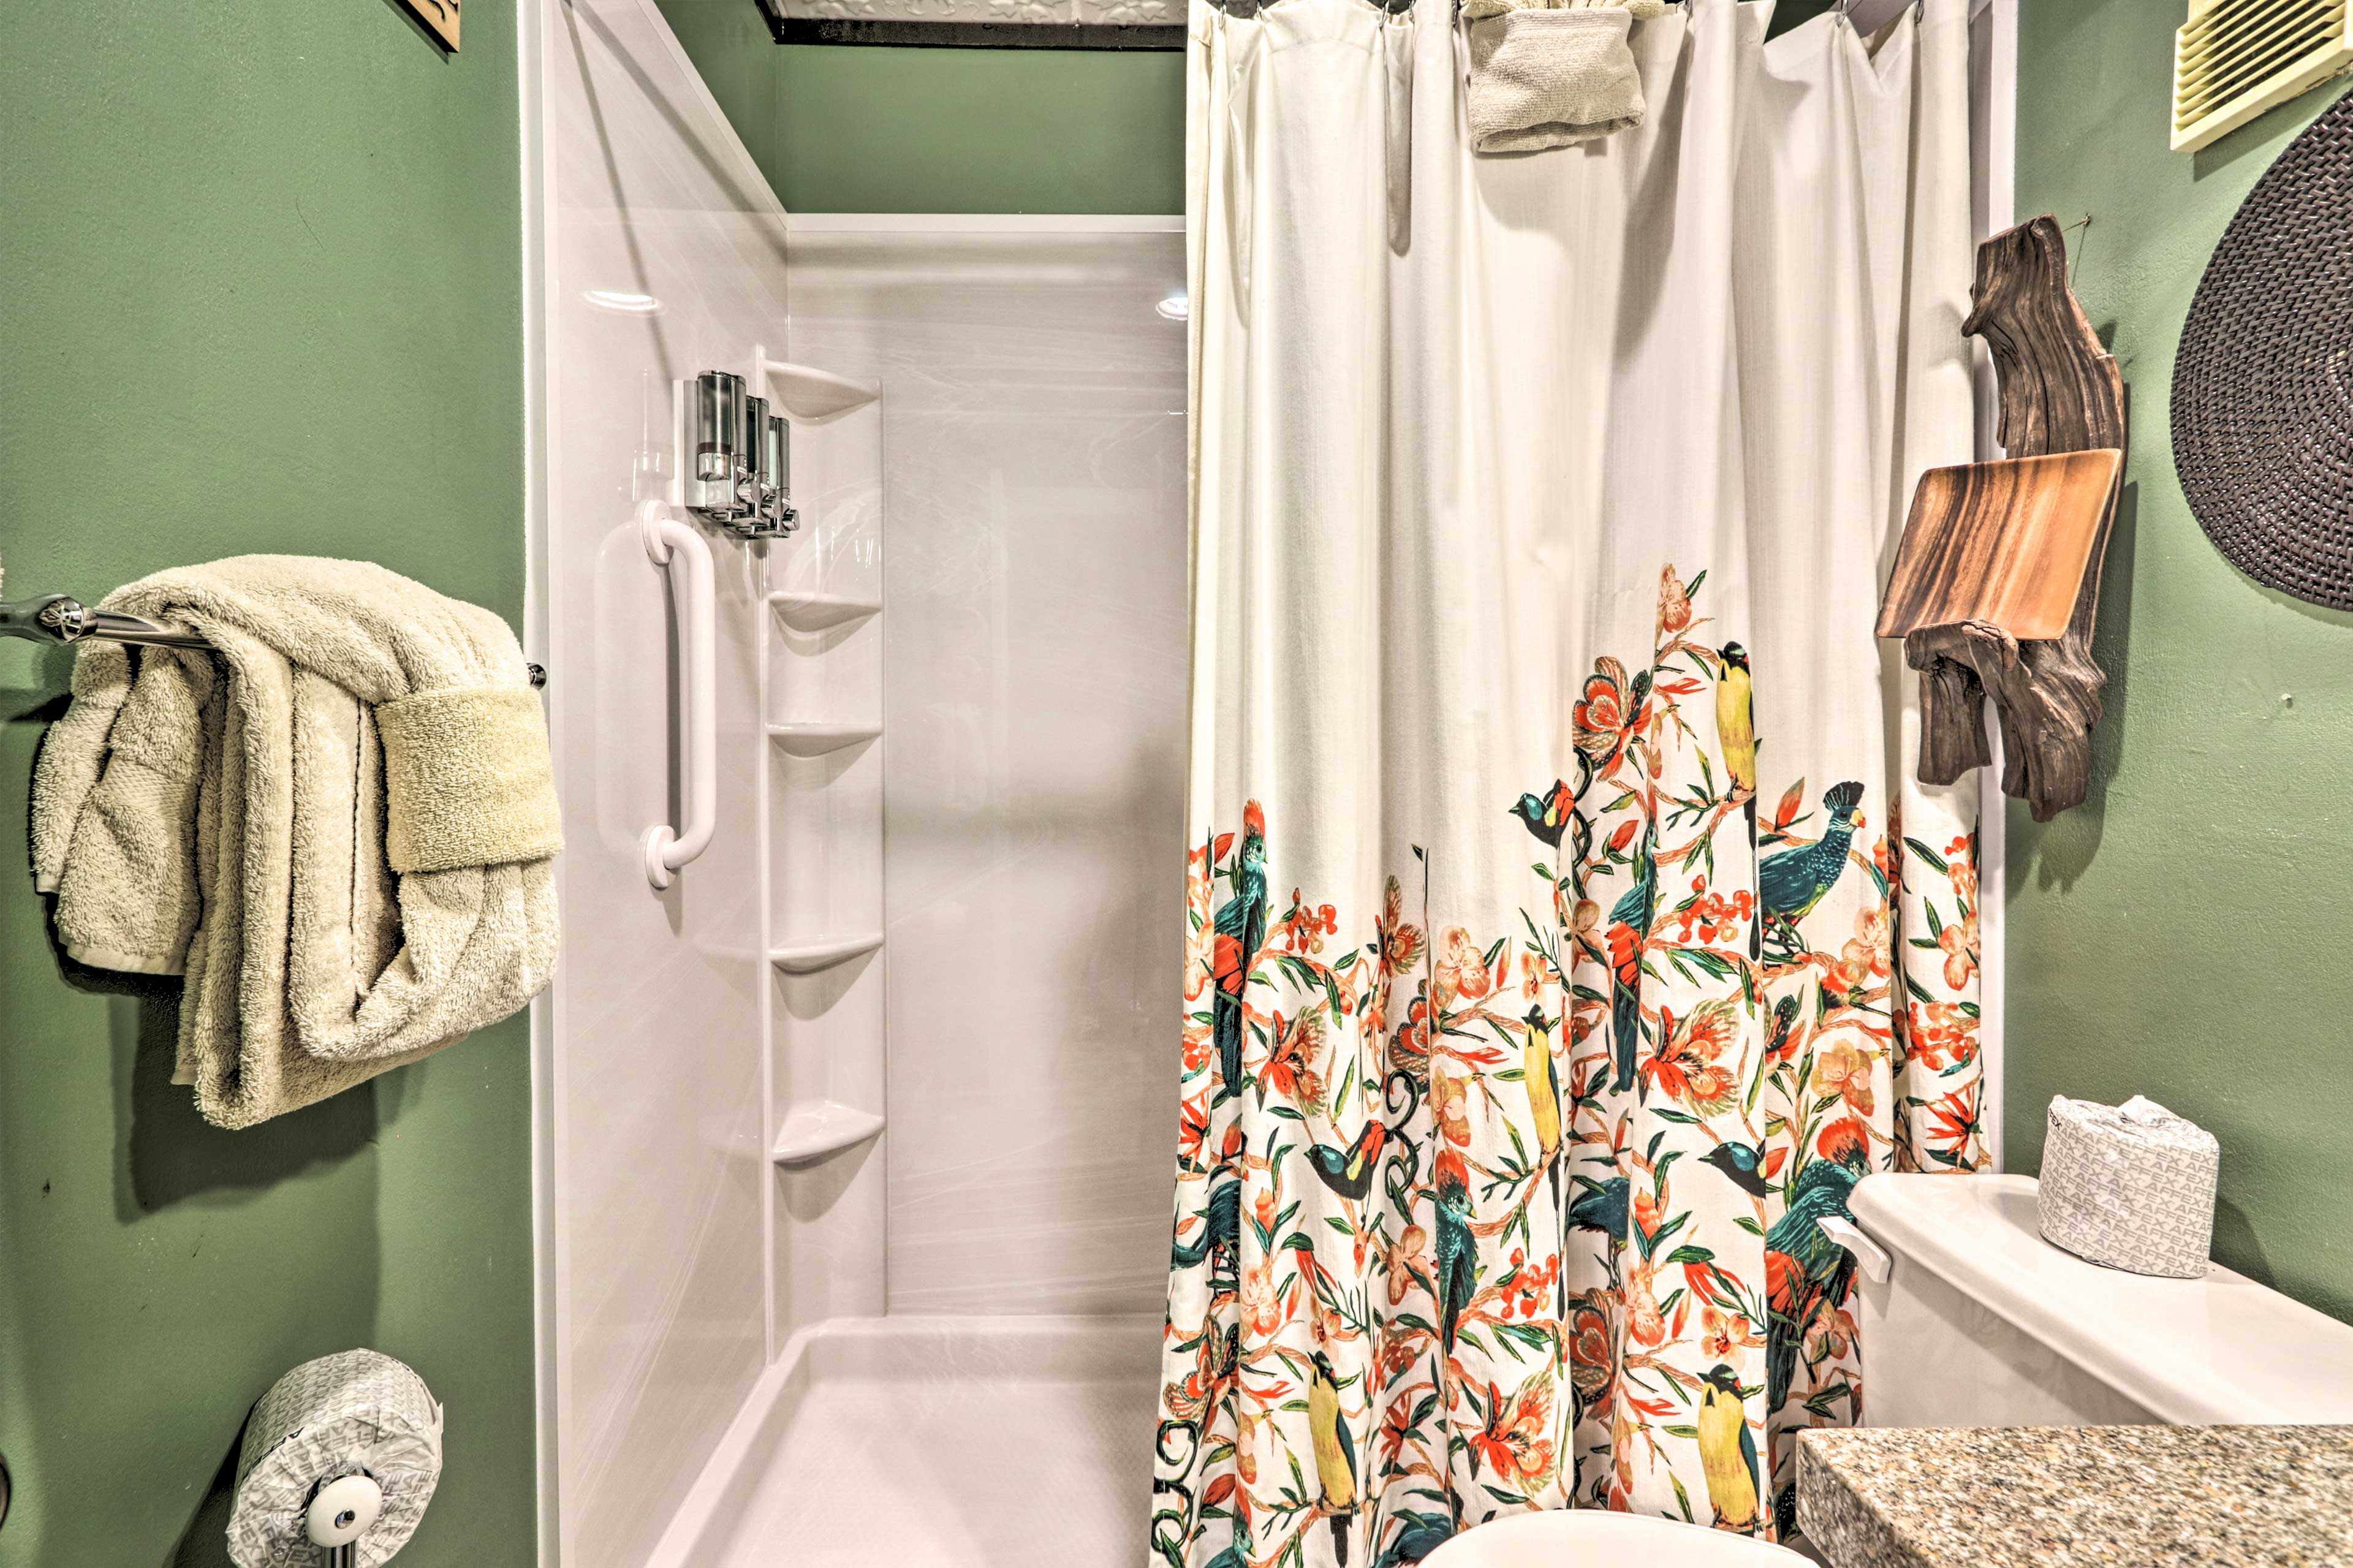 Unwind in the step-in shower.